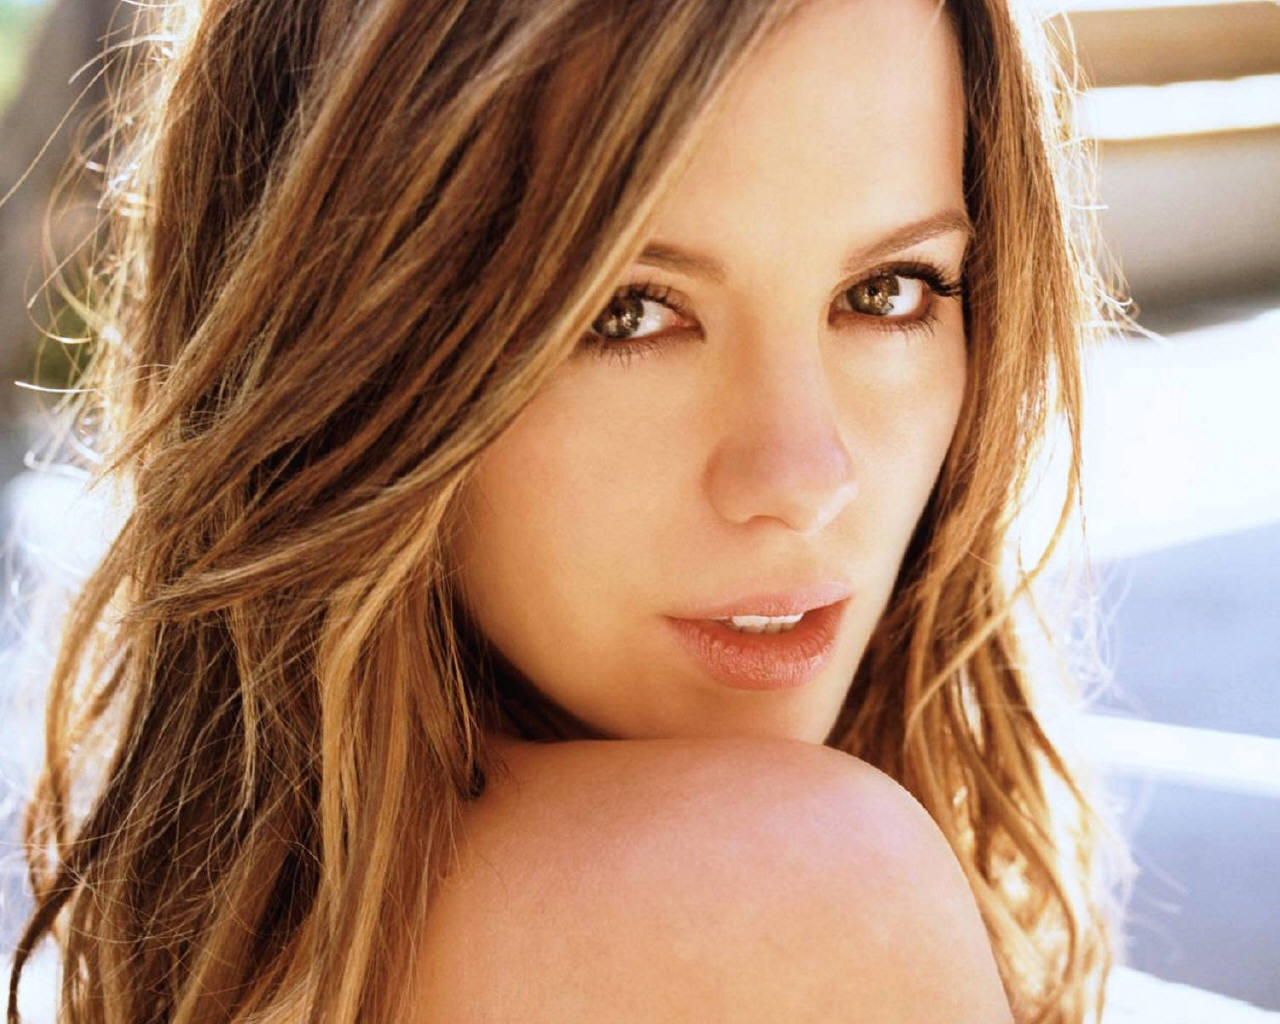 Imagineanddo Girls Kate Beckinsale Wallpapers